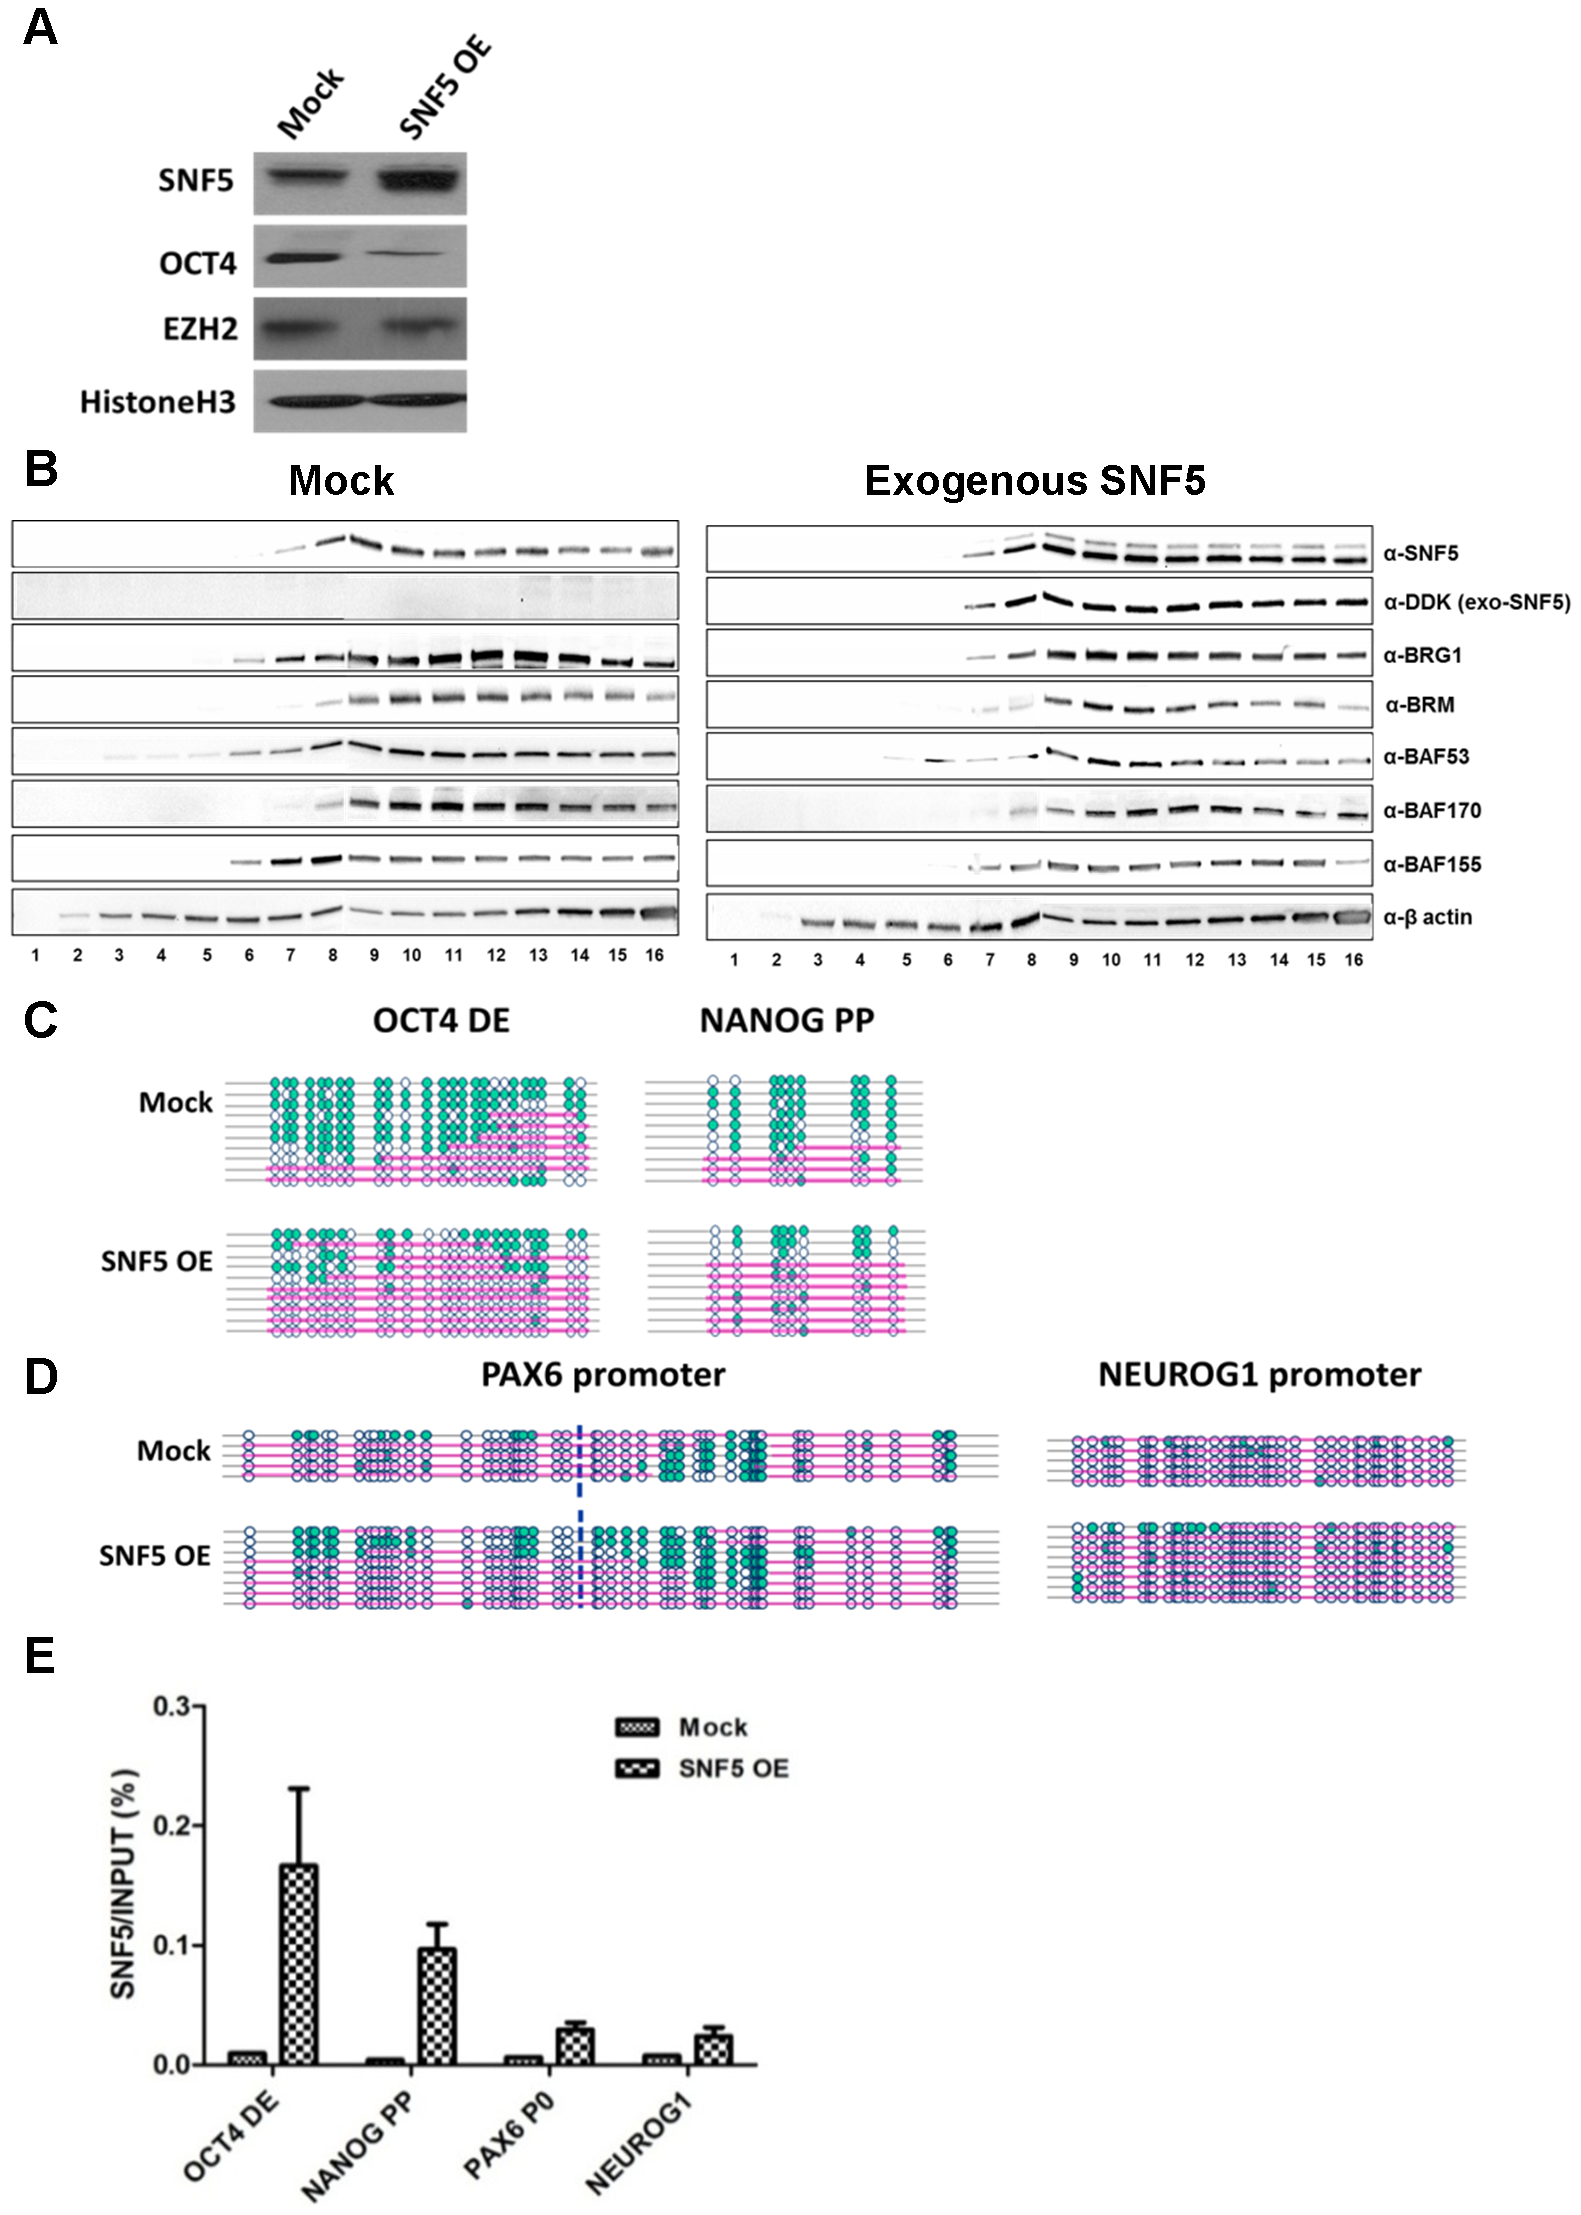 Overexpression of SNF5 disturbs epigenetic regulation and enhances differentiation.